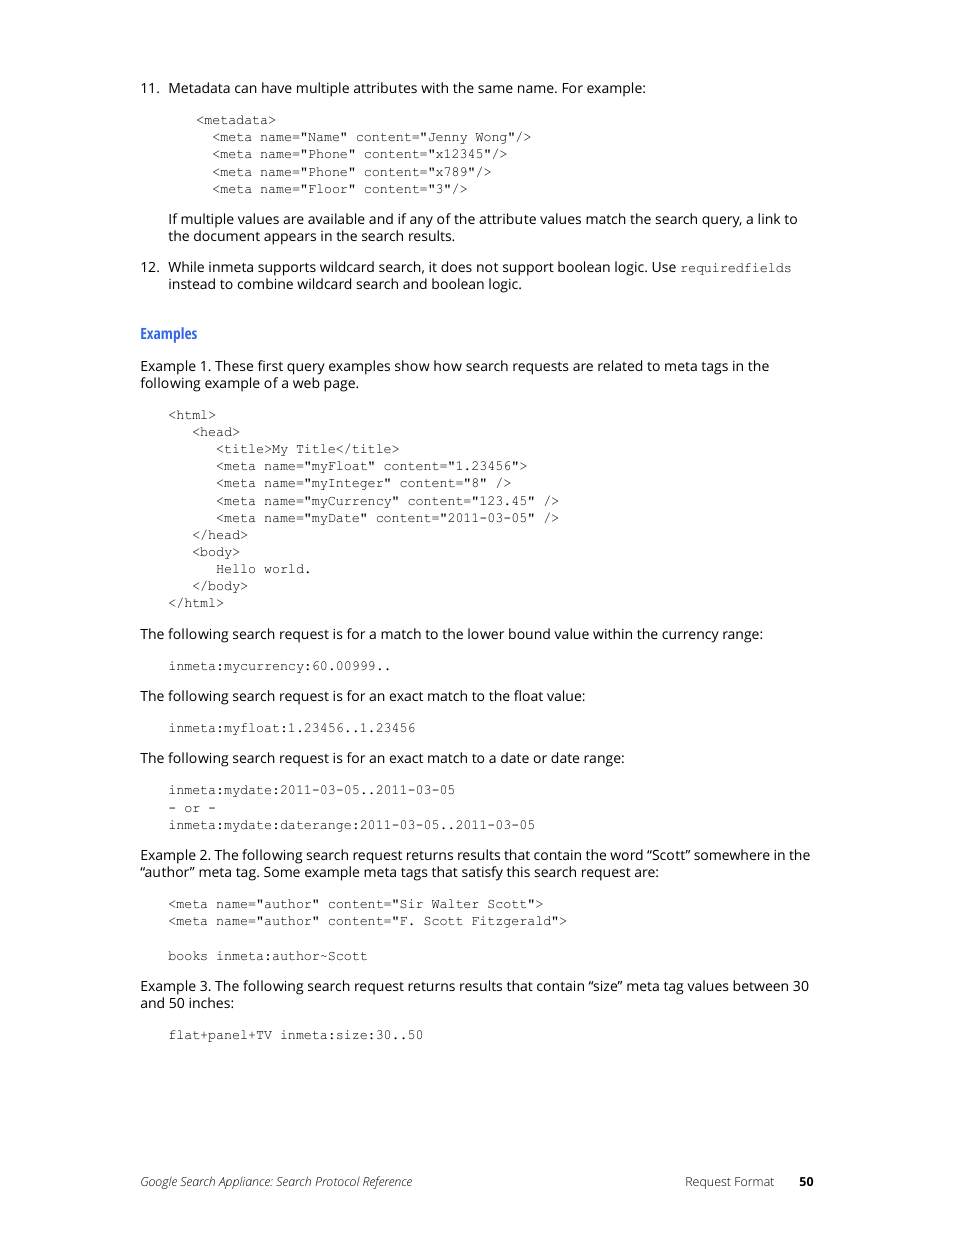 Google Search Appliance Protocol Reference User Manual | Page 50 / 116